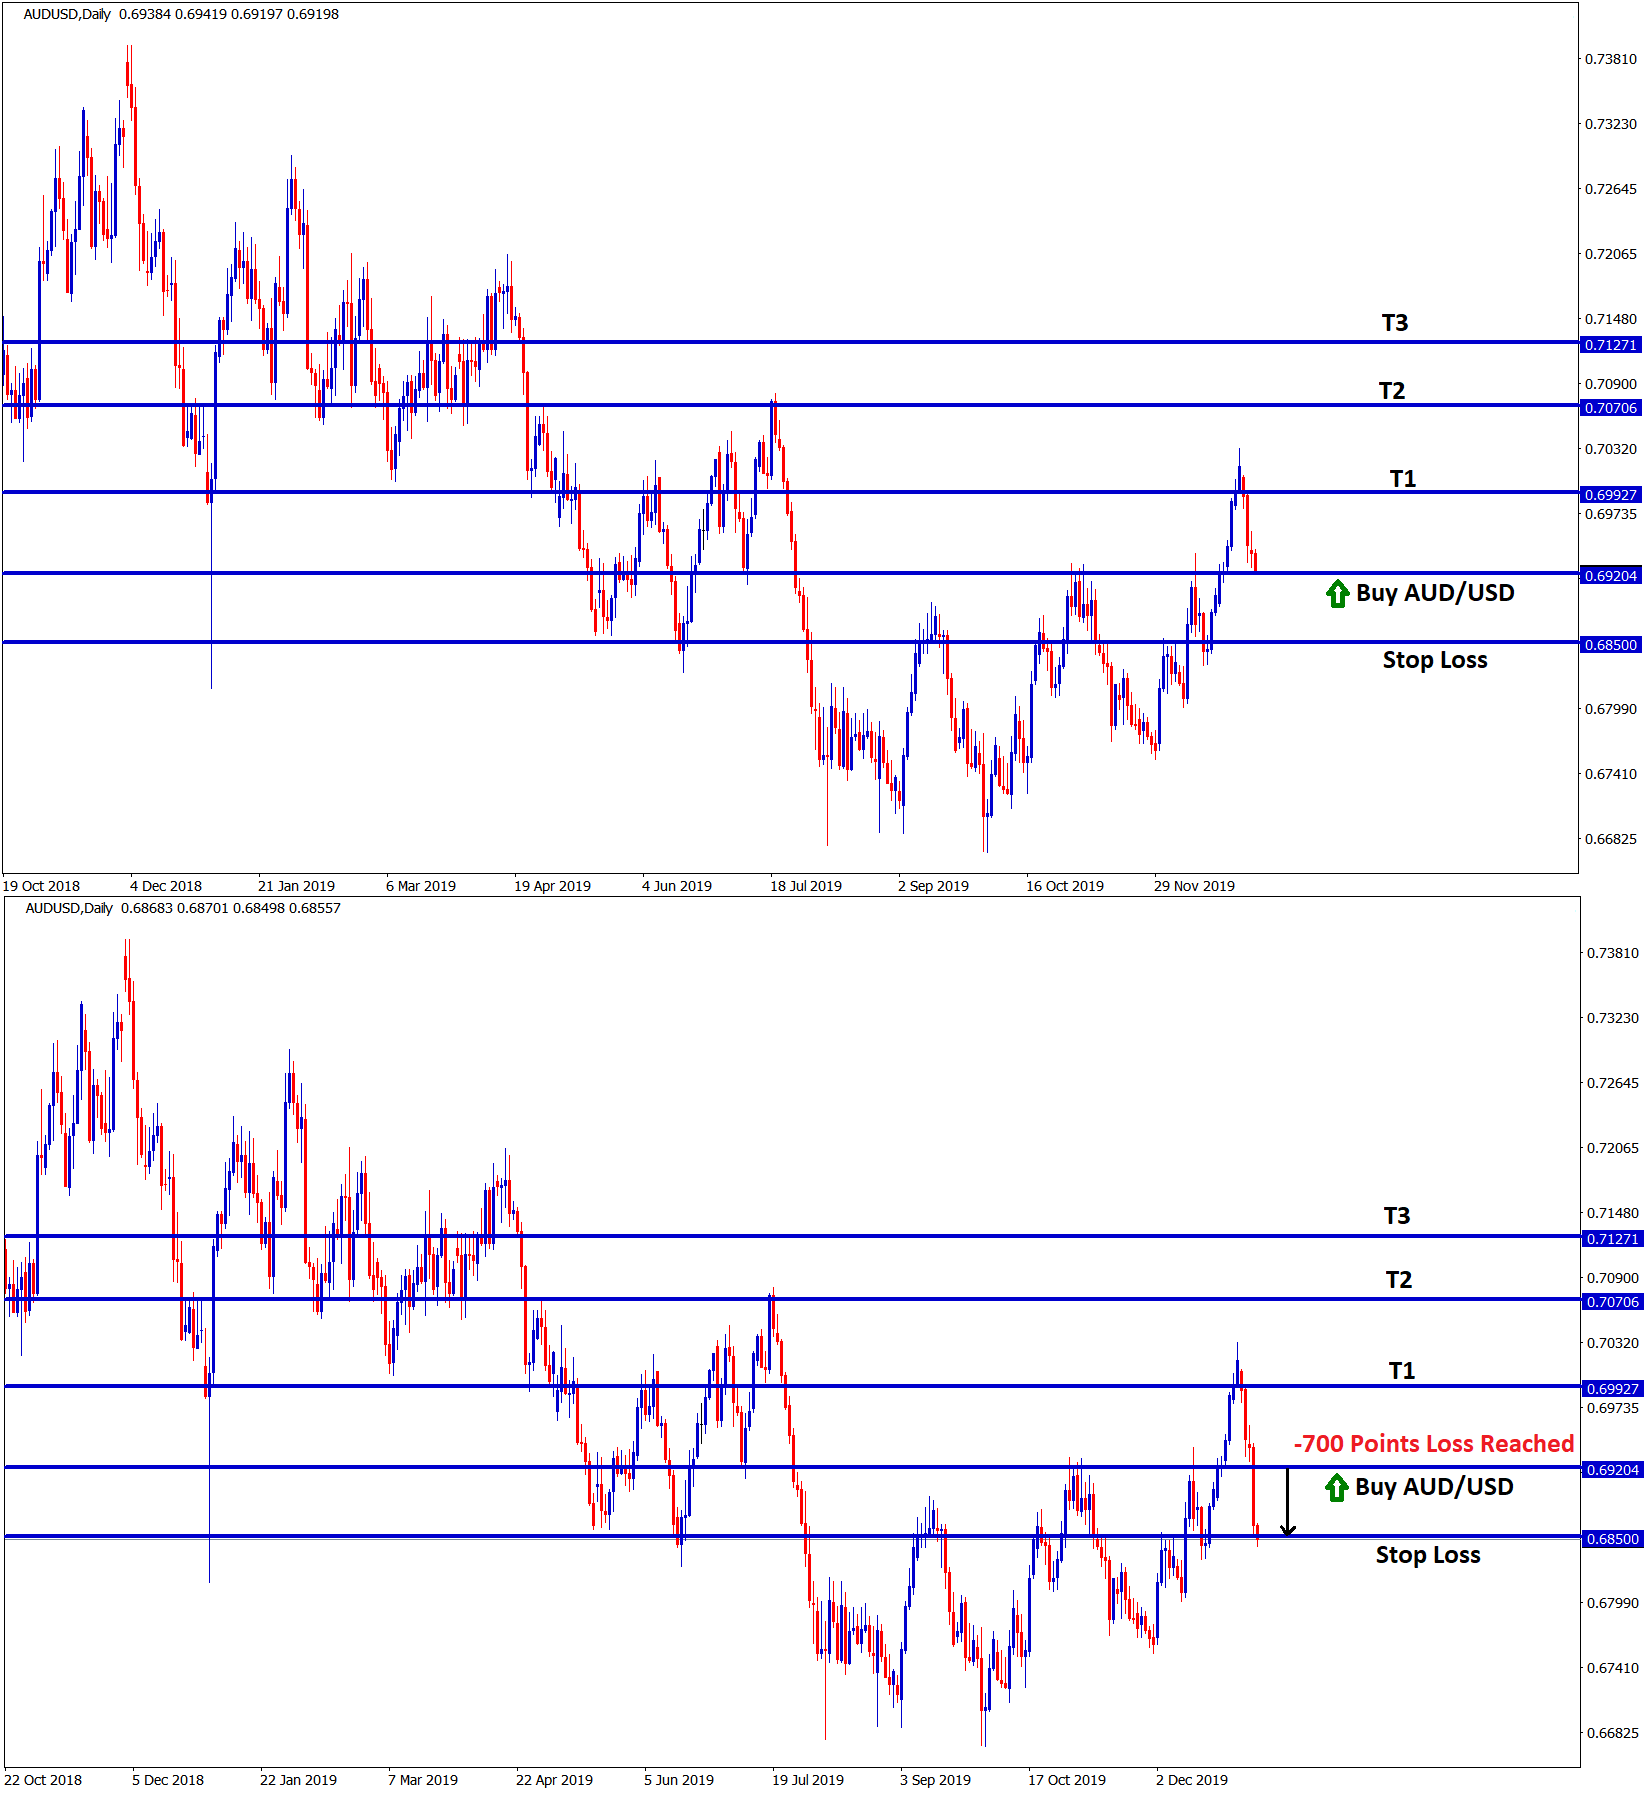 Forex GDP stop loss reached in aud usd Buy signal